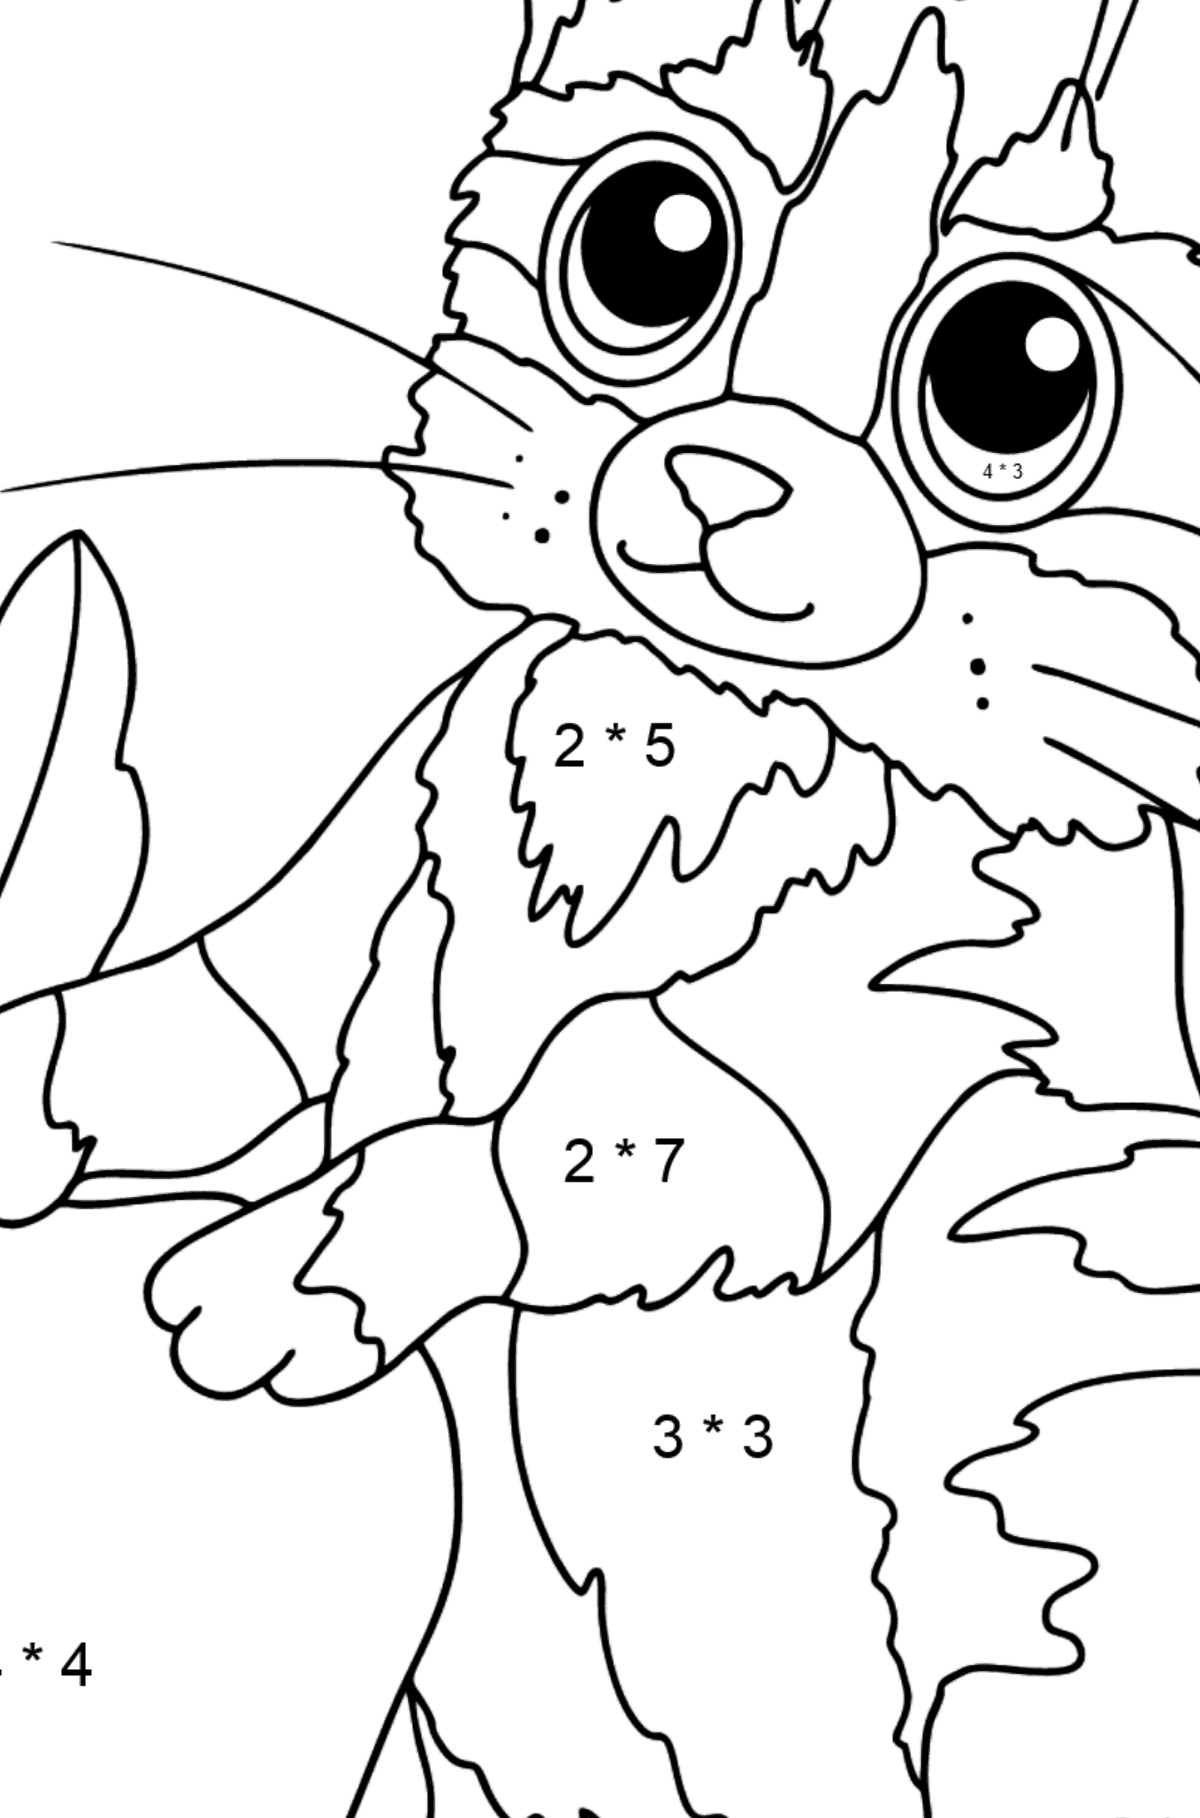 A Kitten is Playing with an Apple - Stampy cat coloring page - Math Coloring - Multiplication for Kids